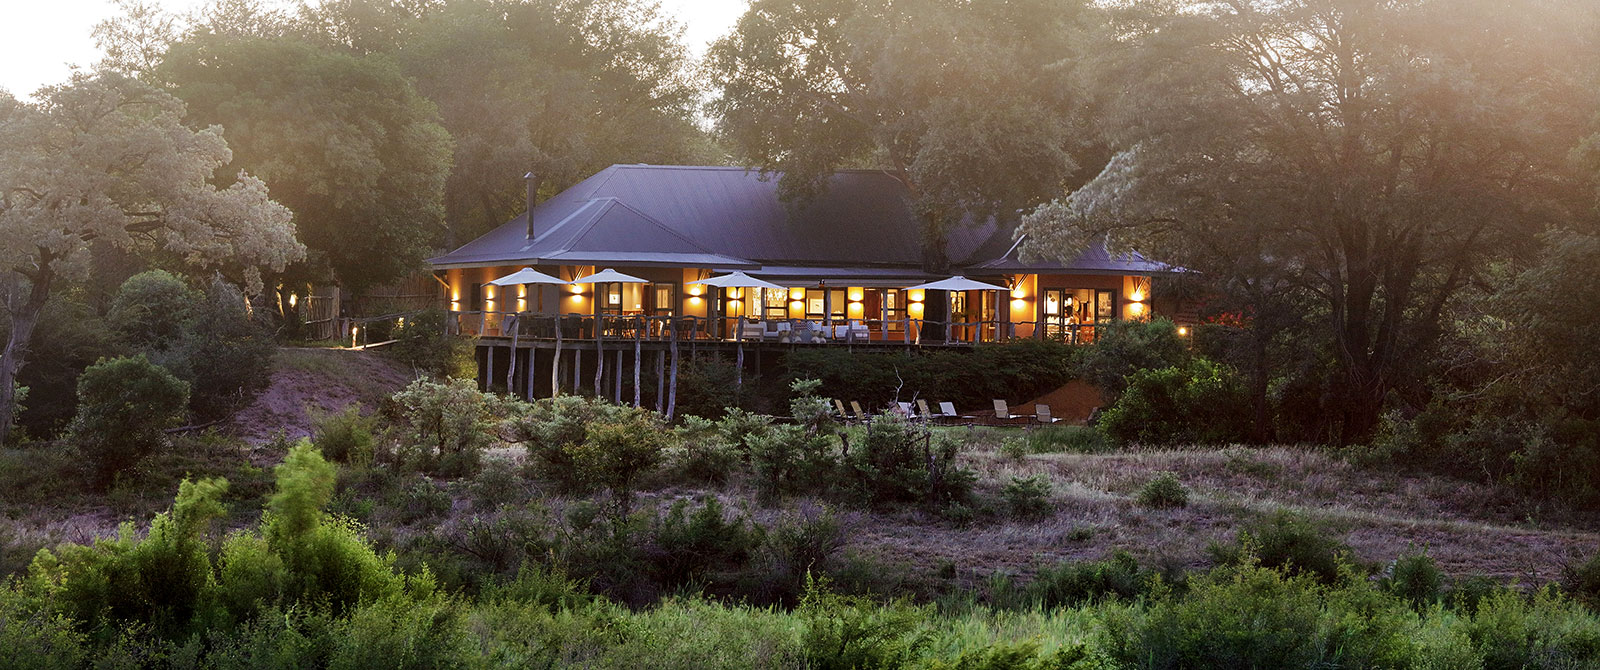 MalaMala Sable Camp - Exterior at Dusk - Kruger Safaris South Africa